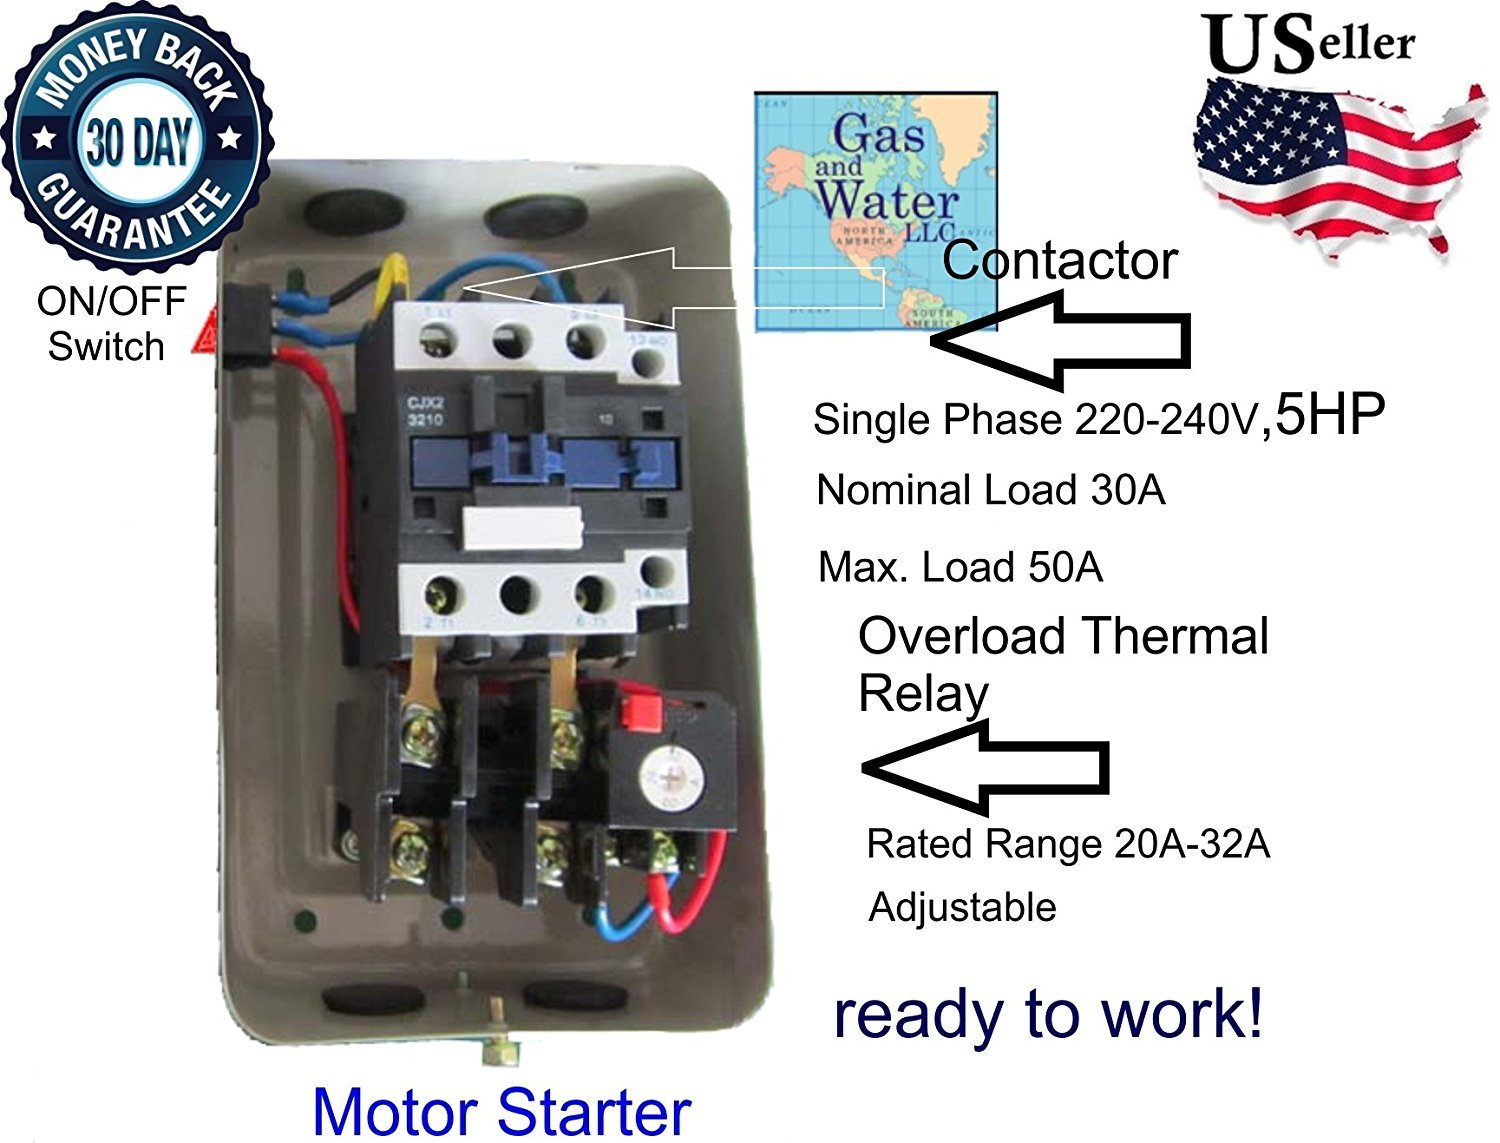 Best Rated In Electrical Motor Controls Helpful Customer Reviews Electric Wiring Diagram For G 50a Magnetic Starter Control 5 Hp Single Phase 220 240v 22 34a With On Off Switch